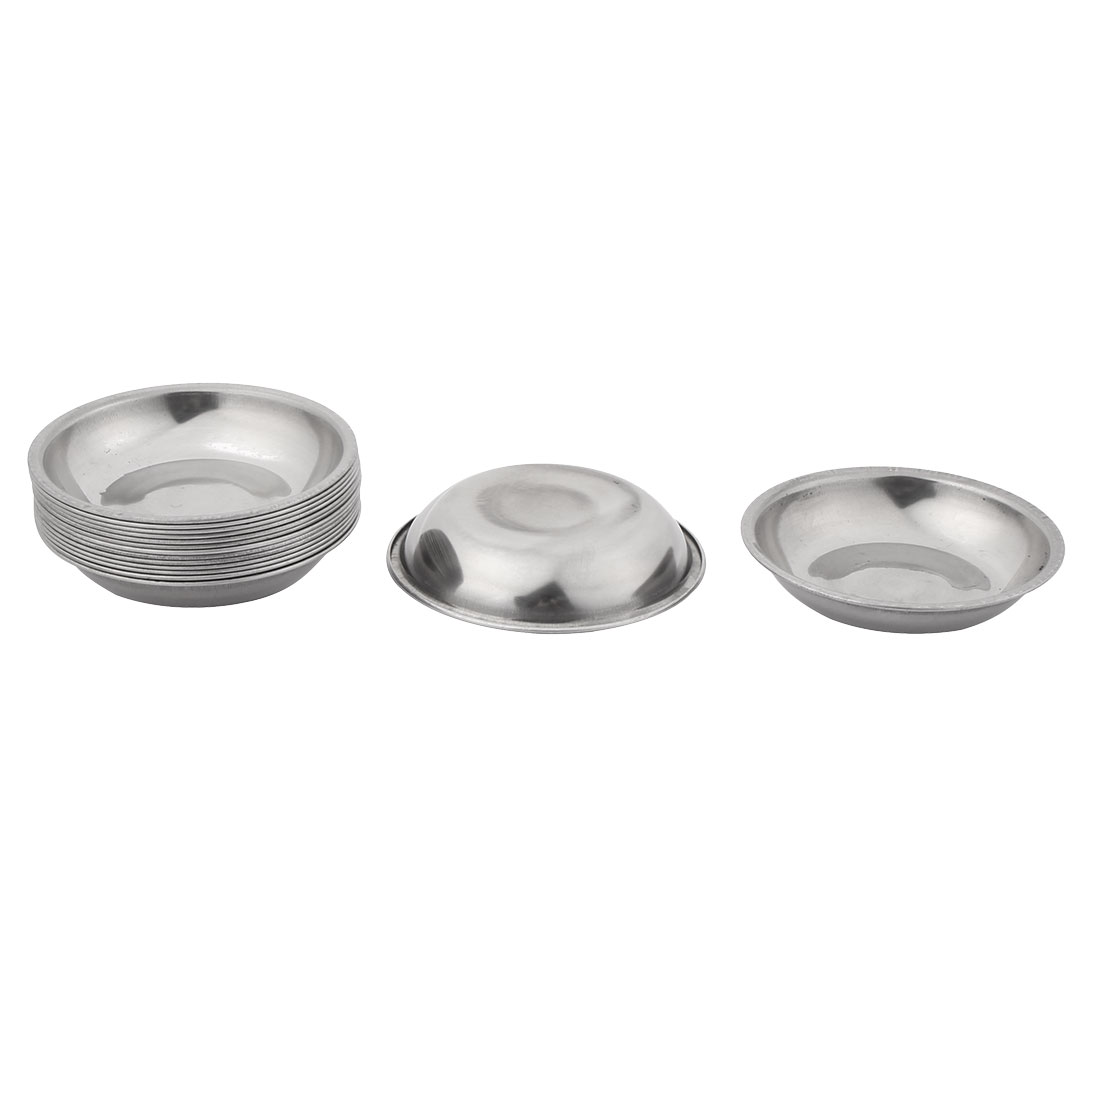 10 pieces stainless steel soy sauce dish plate